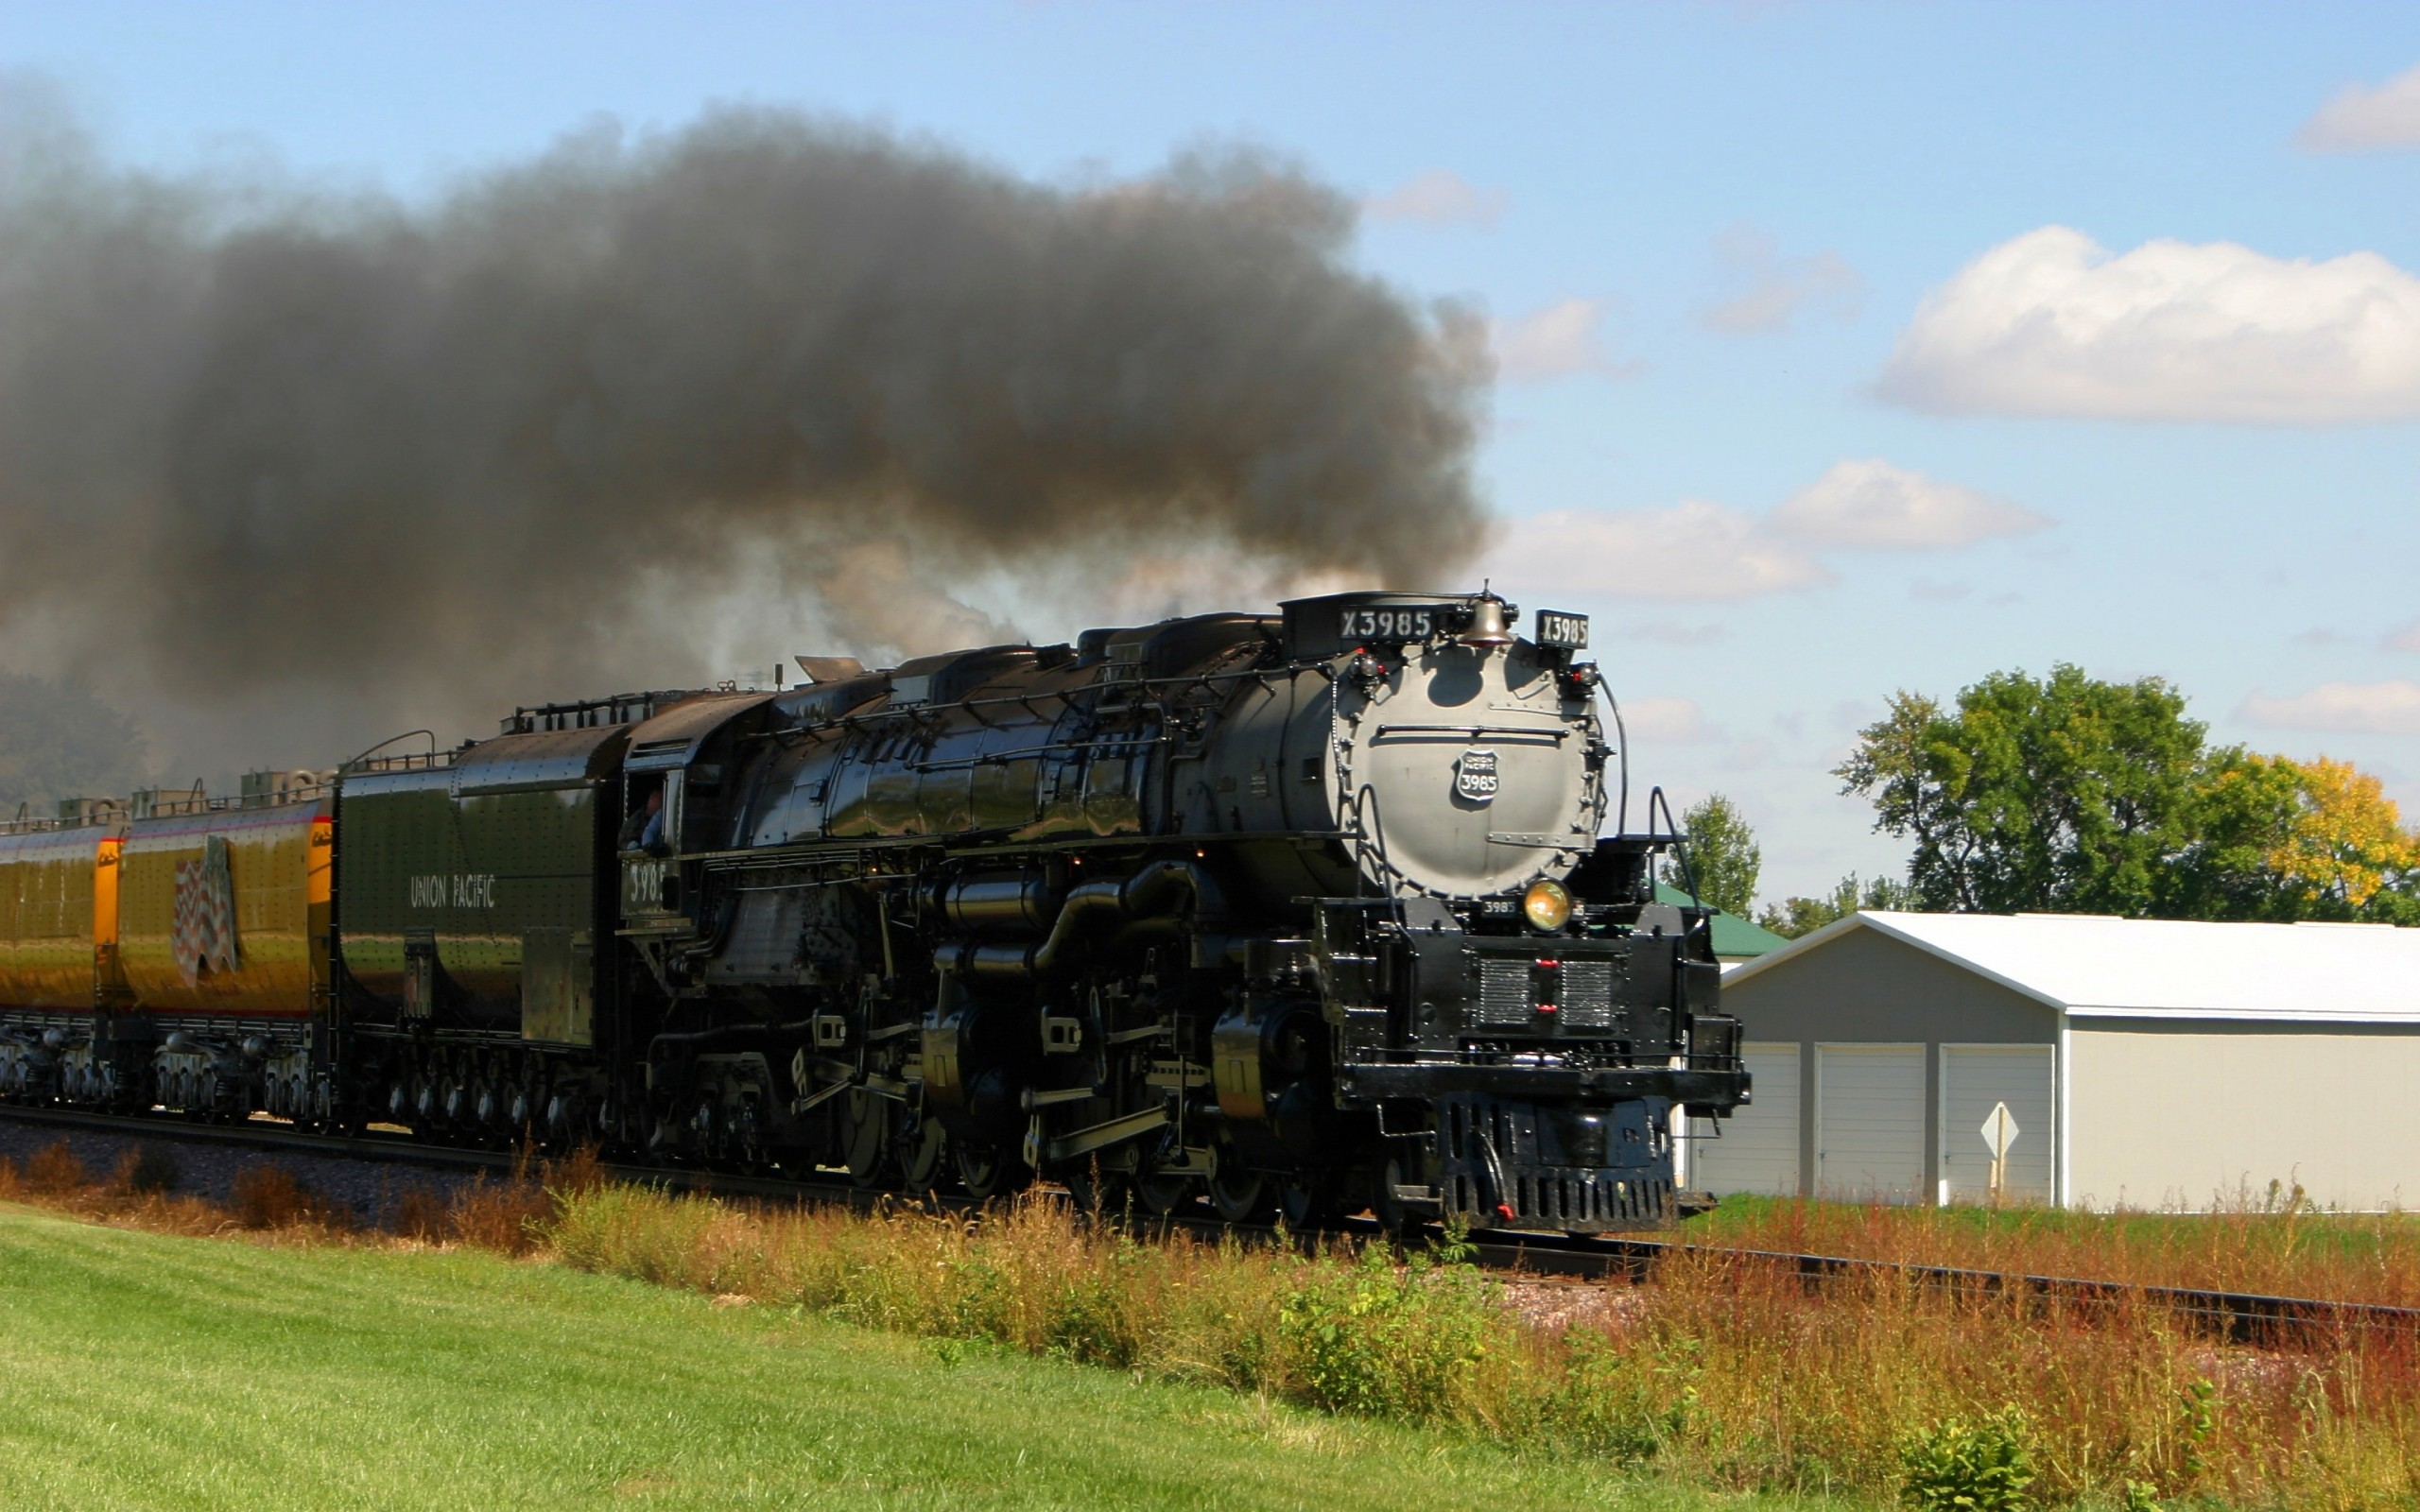 The huge train wallpapers and images   wallpapers pictures photos 2560x1600